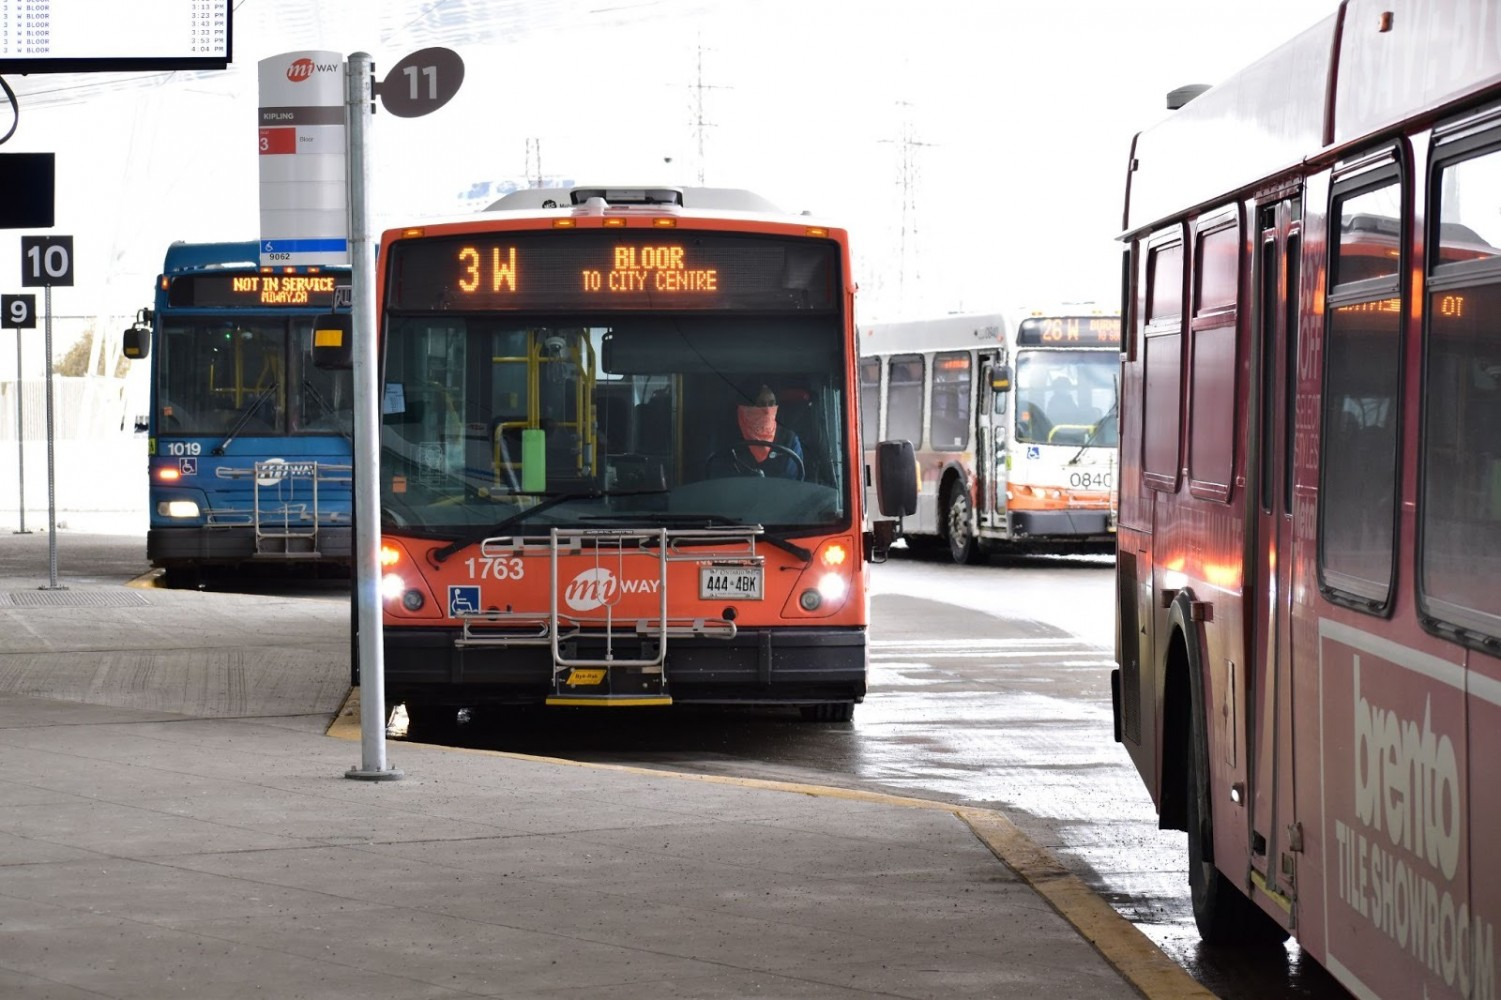 Mississauga project a first step to ease GTA's transit woes